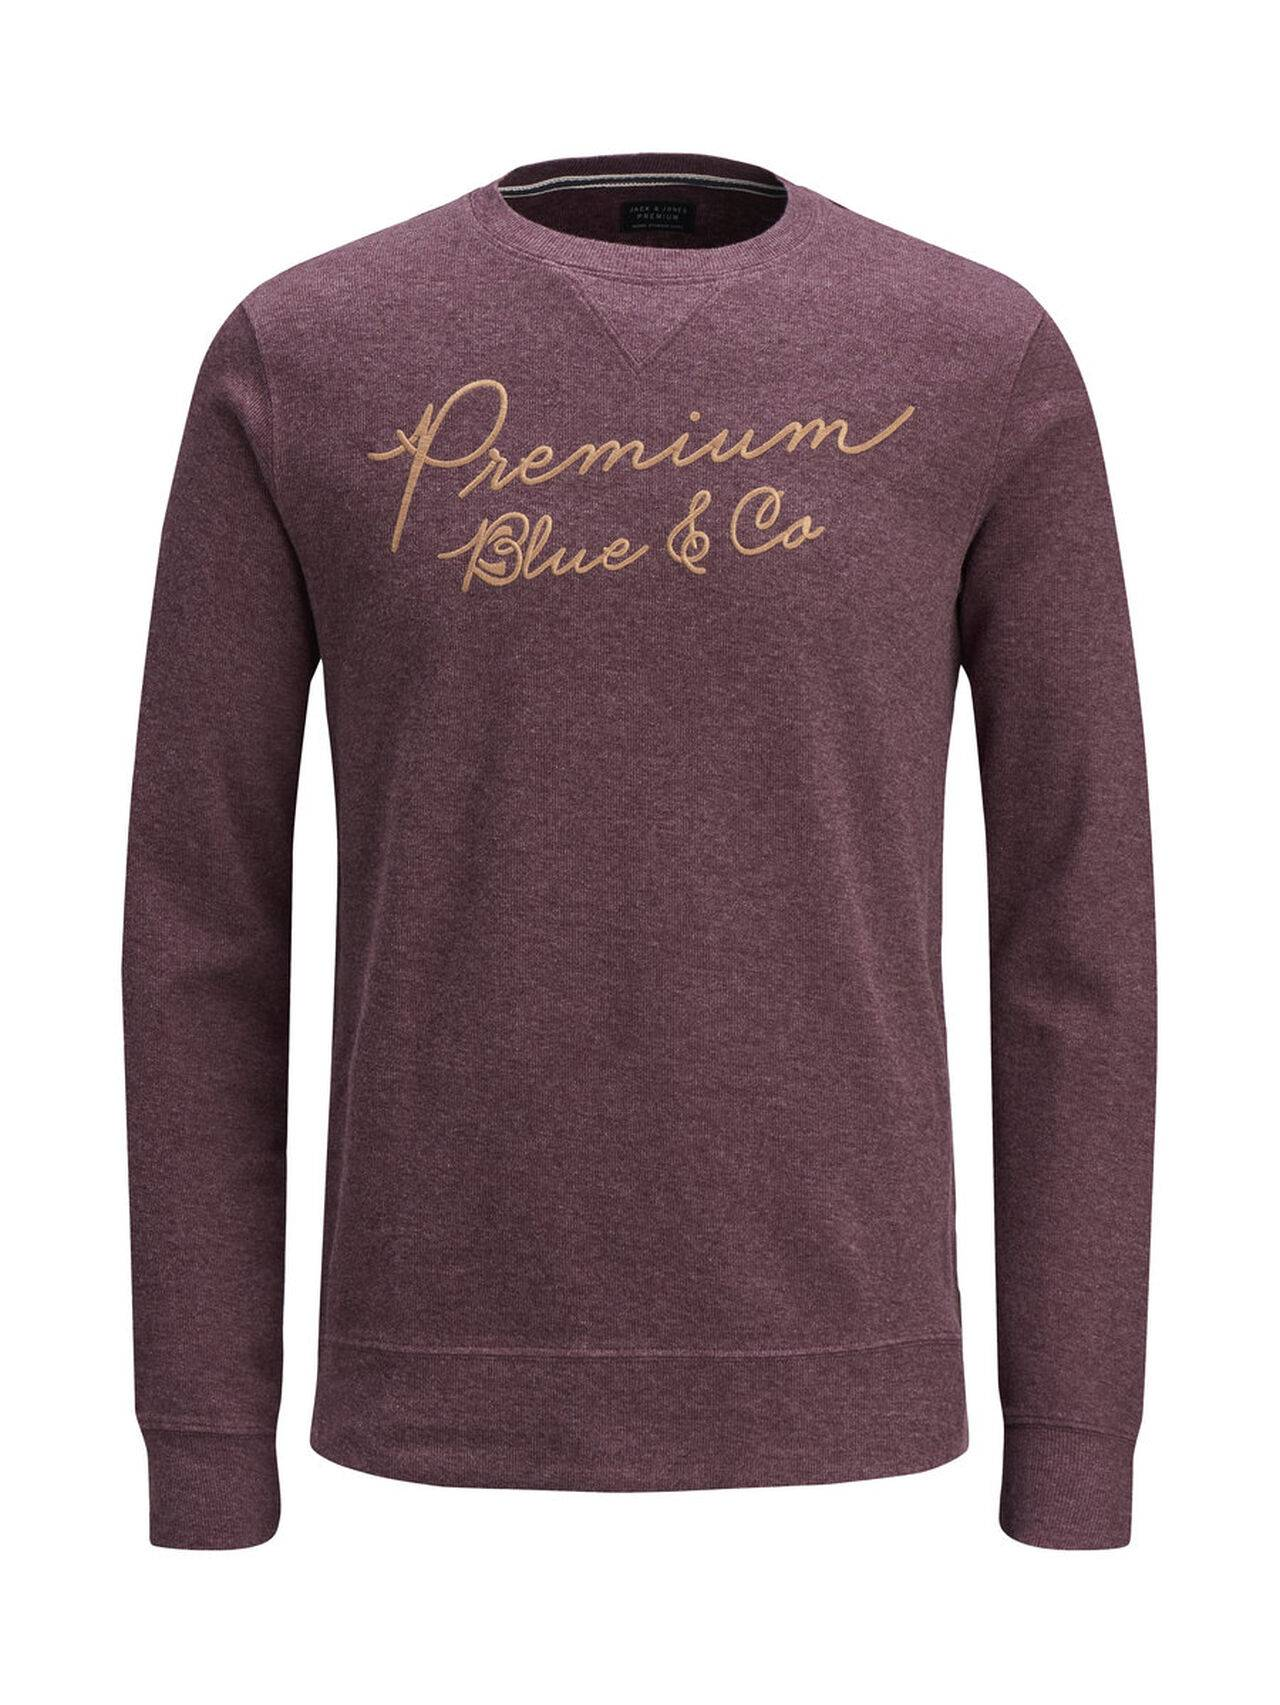 JACK & JONES Crew Neck Sweatshirt Men Purple Sassafras